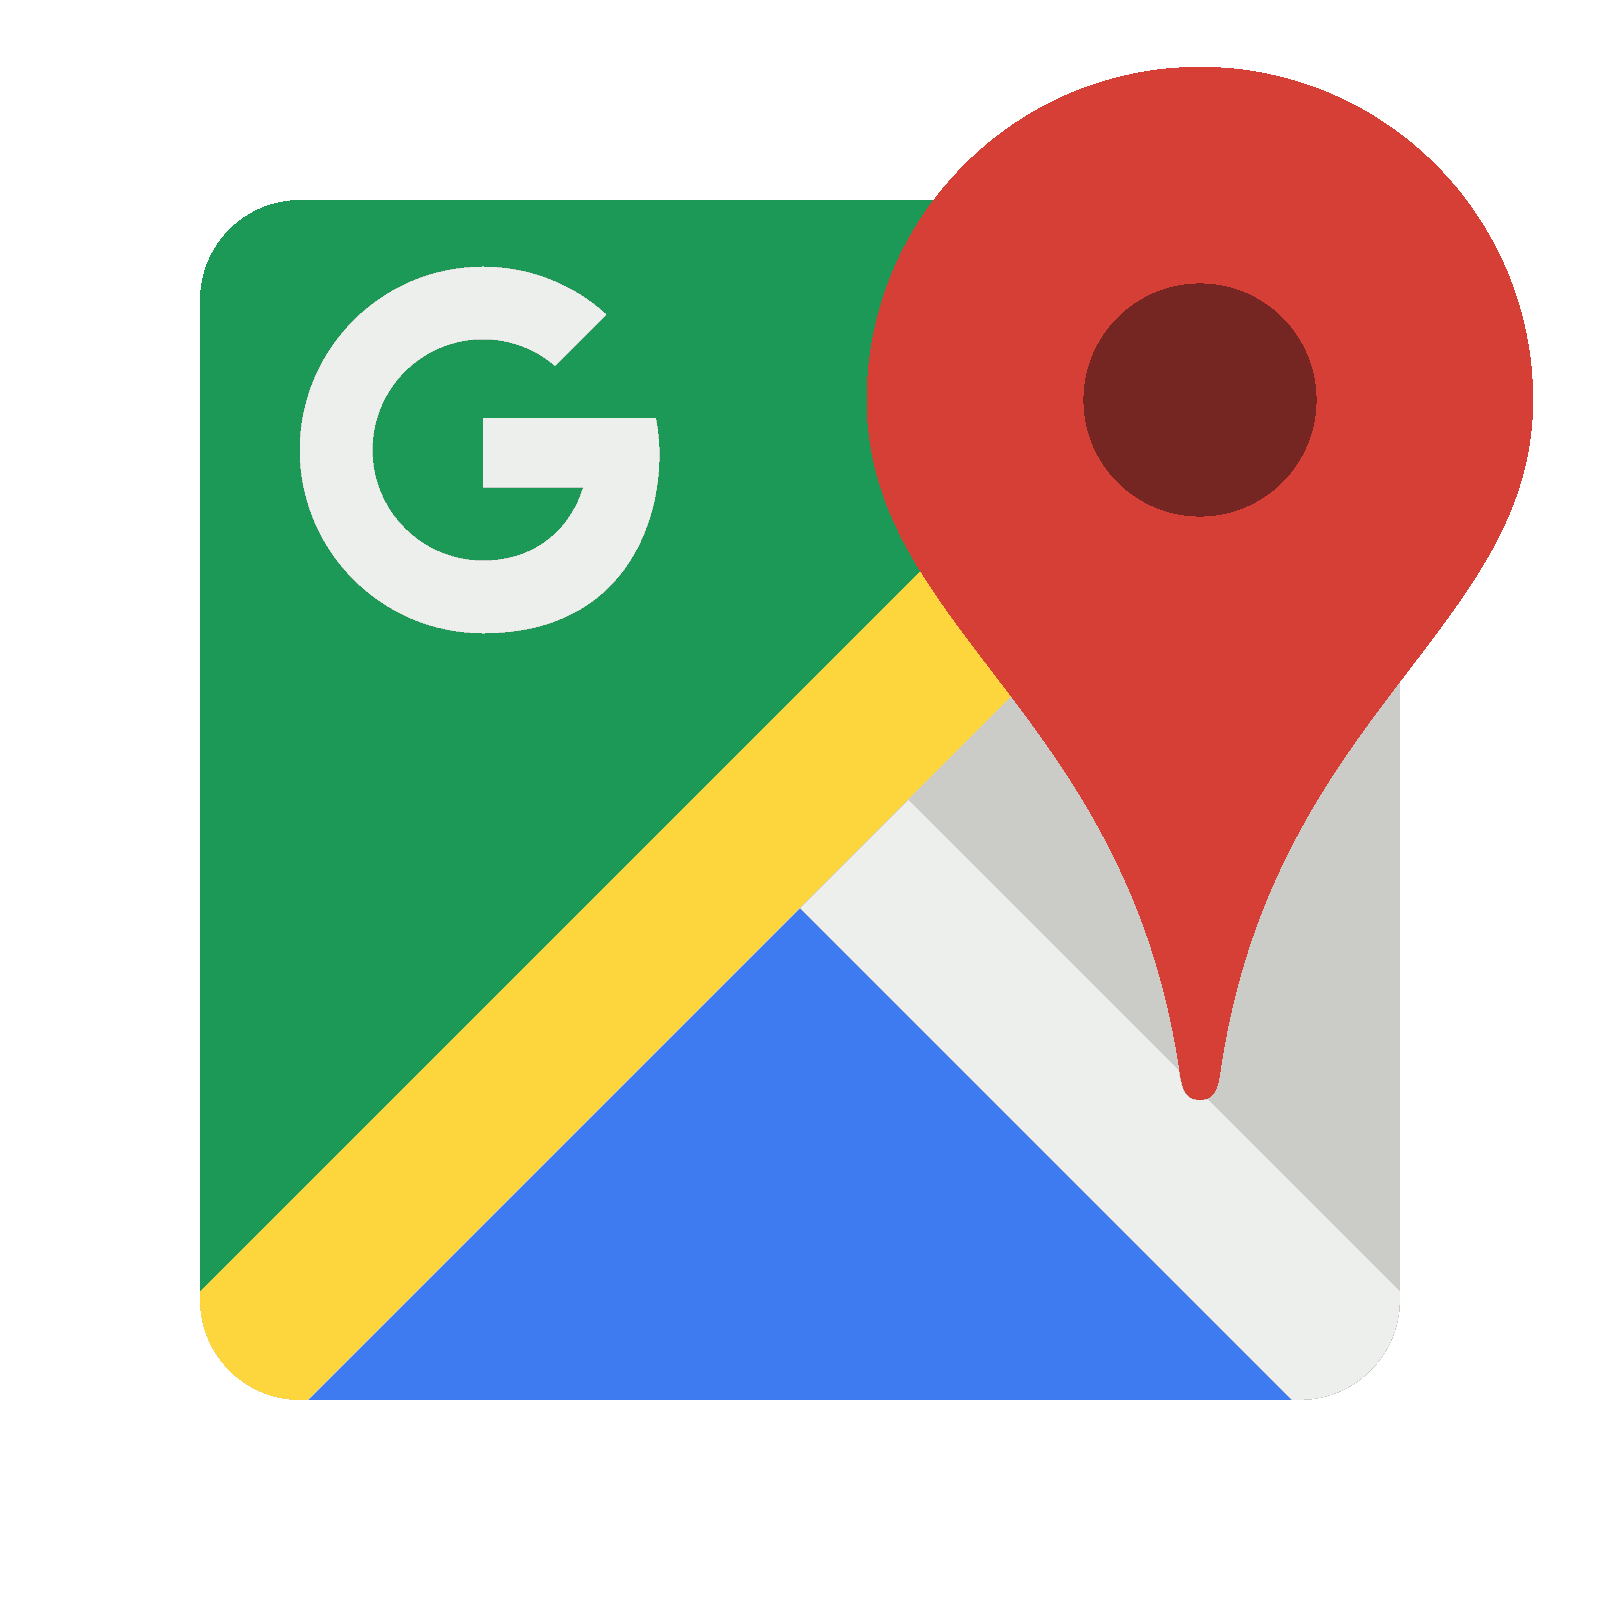 Are Coworking Spaces for Google Maps Legitimate in 2019 and Beyond